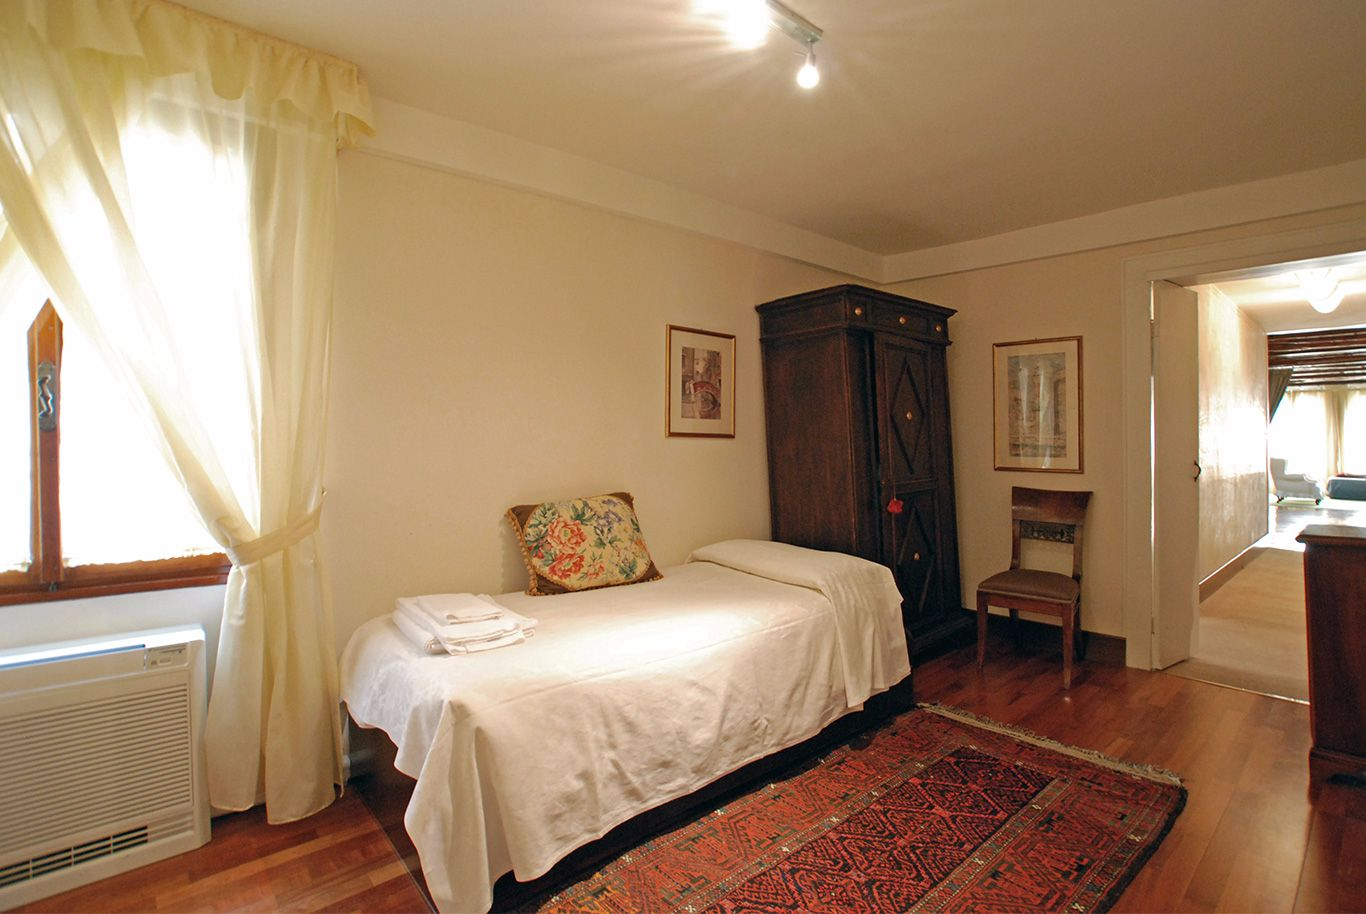 single bedroom next to the master bedroom